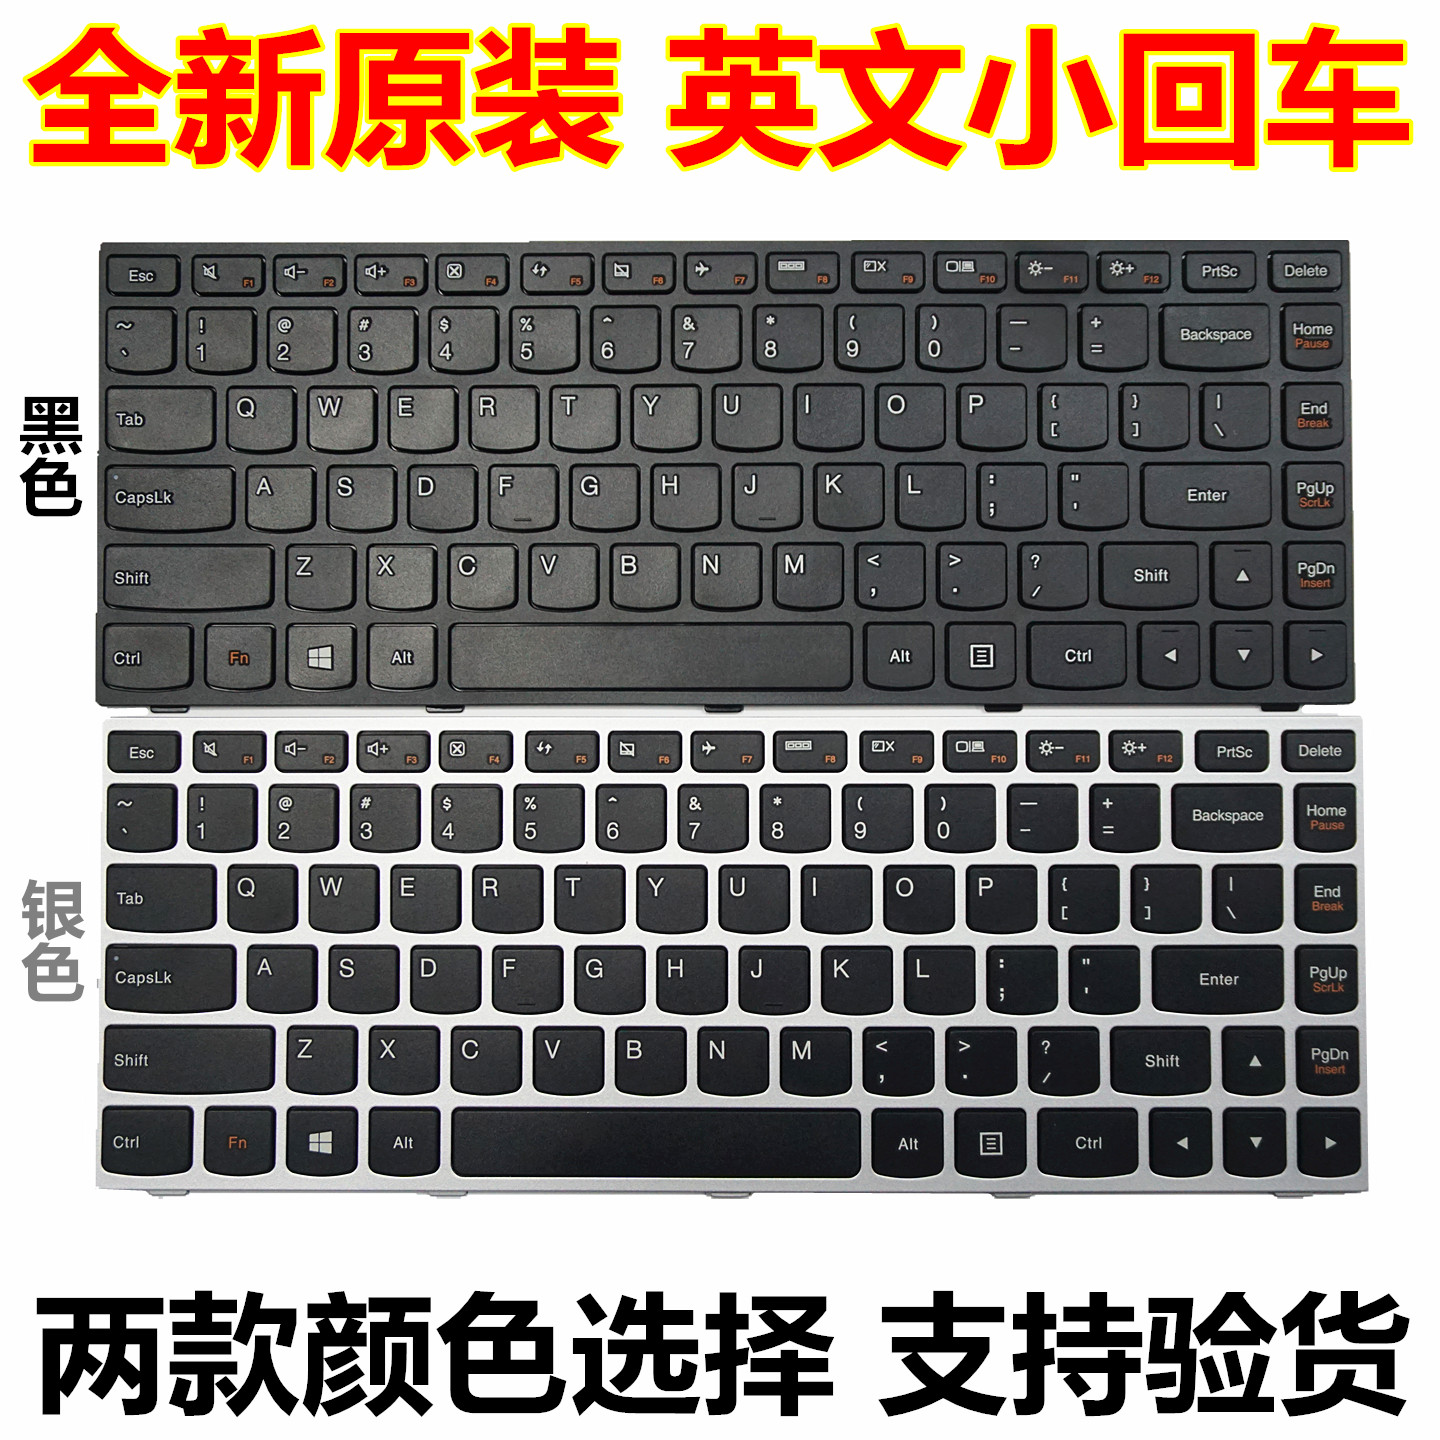 NEW Replace FOR <font><b>LENOVO</b></font> G40 B40 Z41 B41 M41 Z40 -30 N40-<font><b>70</b></font> -80 -75 -<font><b>50</b></font> -70m laptop Built-in keyboard image